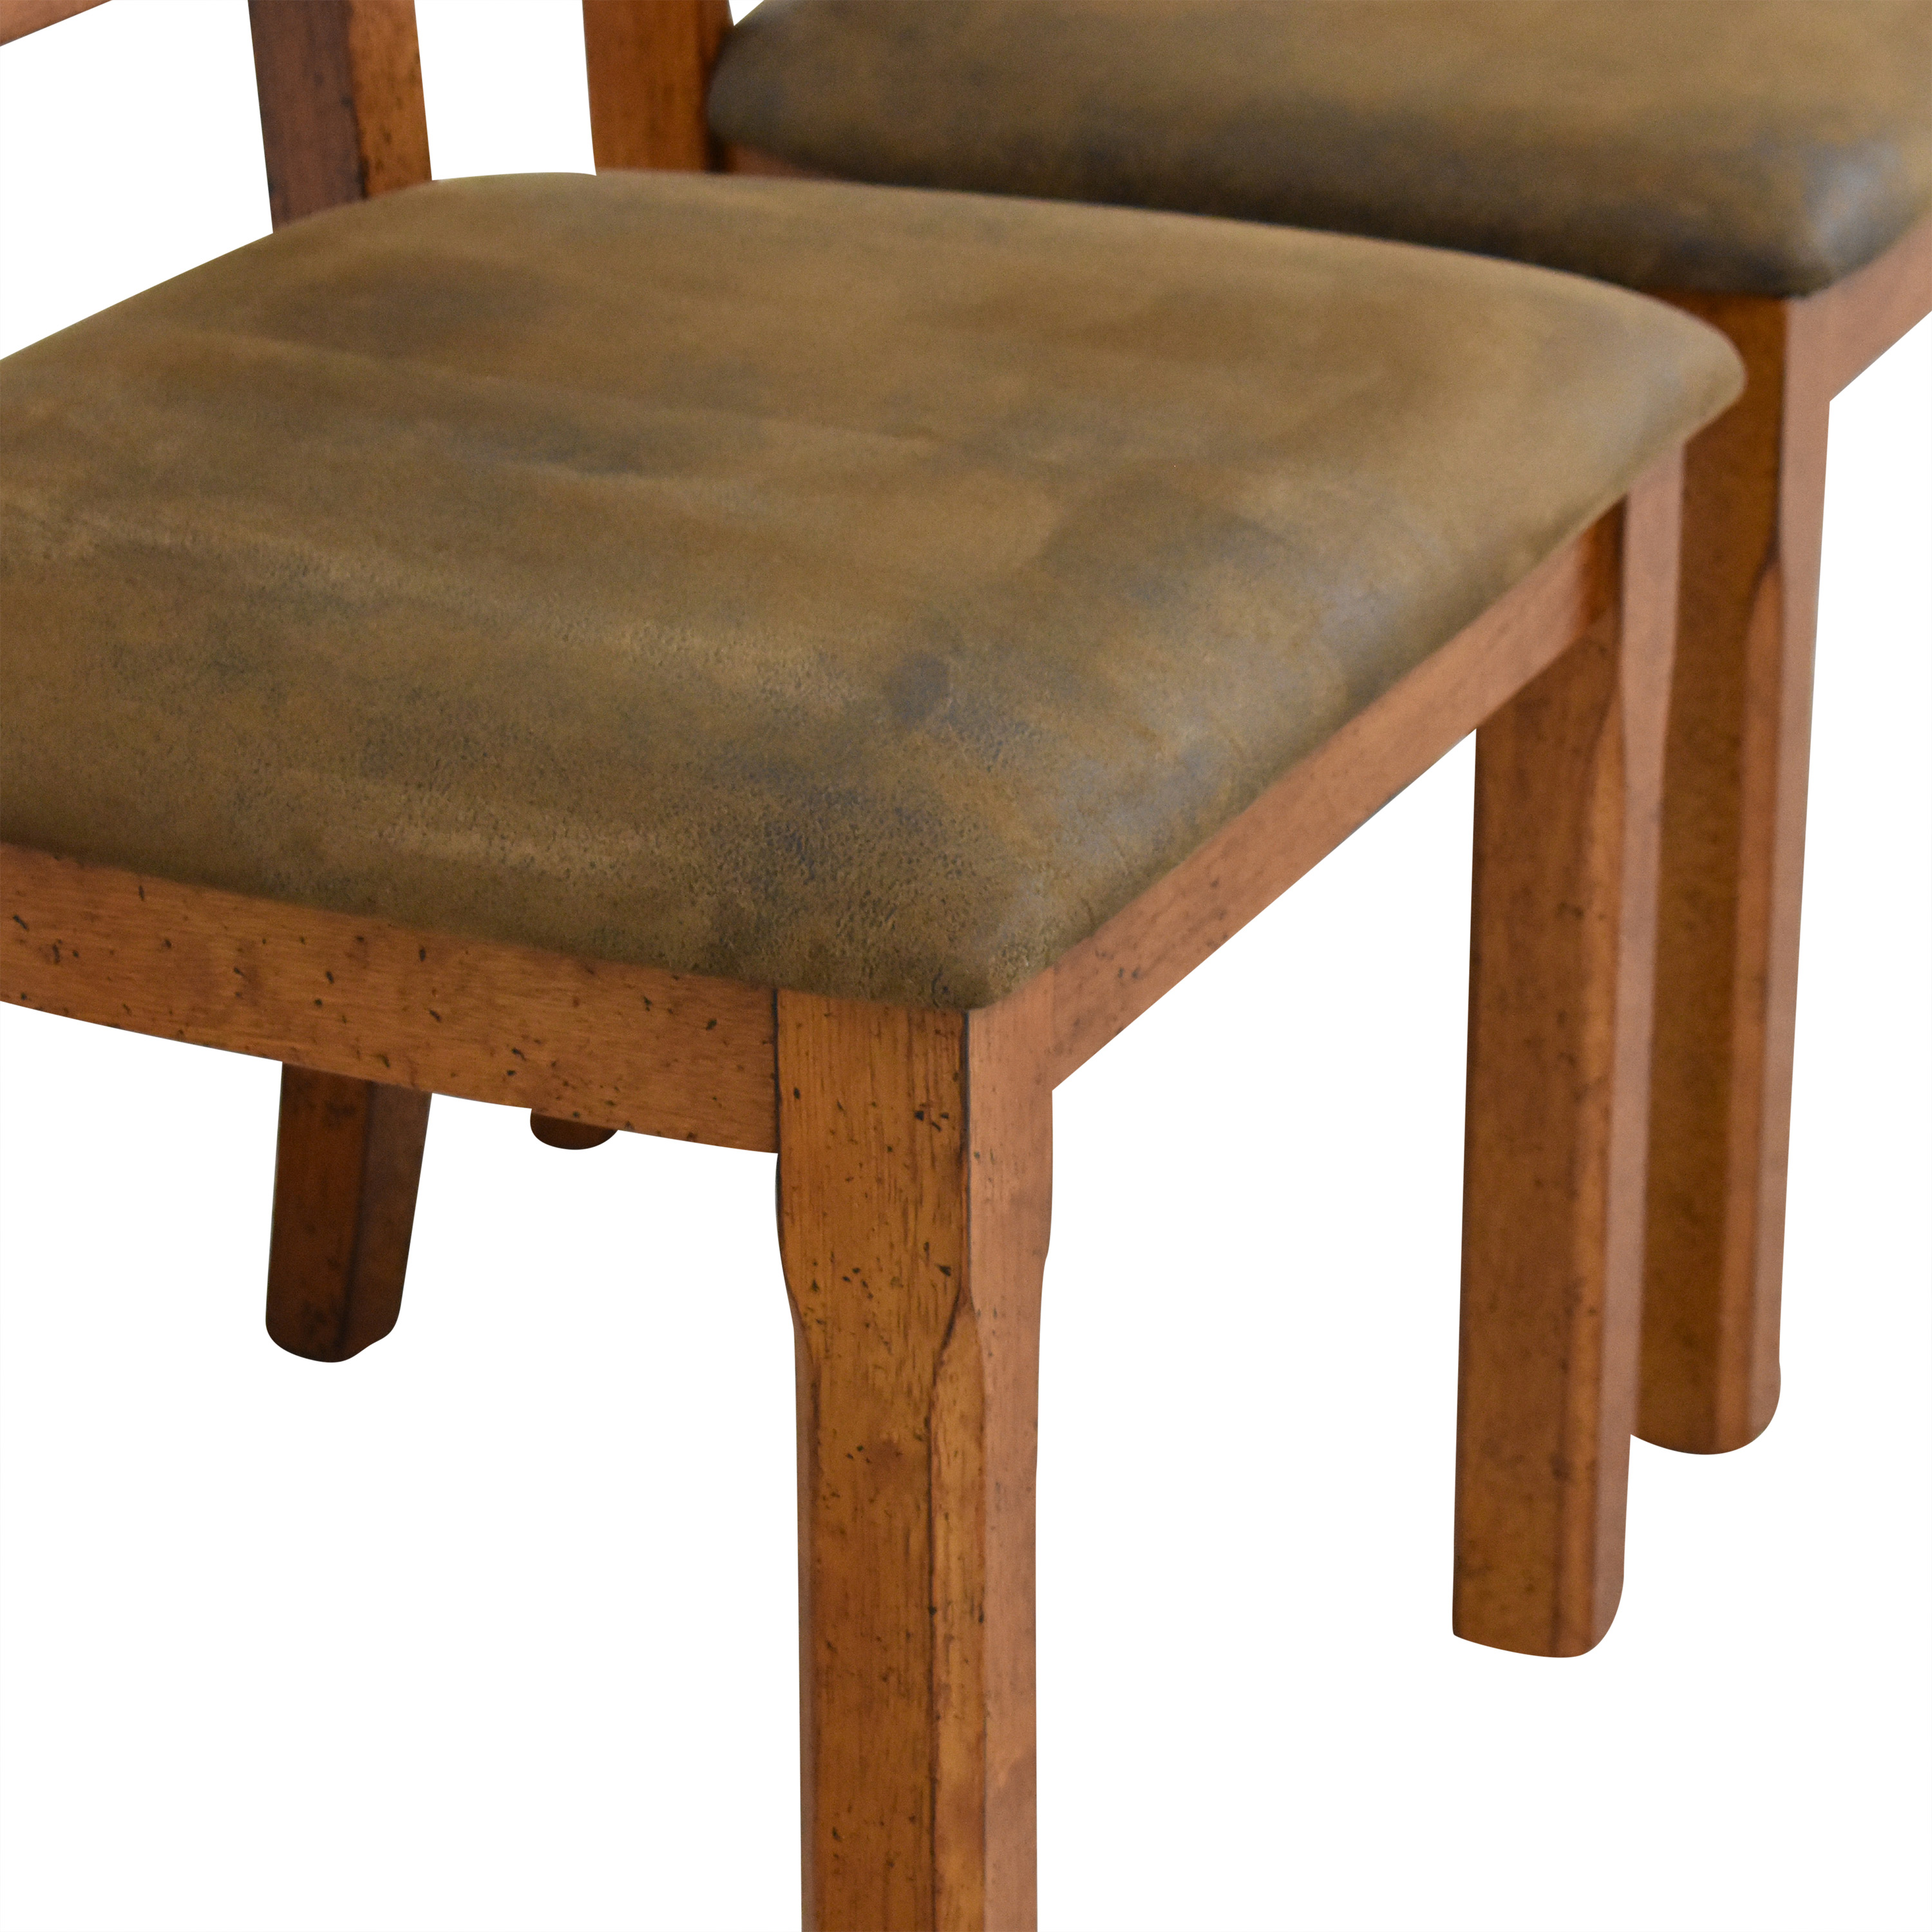 Raymour & Flanigan Raymour & Flanigan Soleste Dining Chairs ct